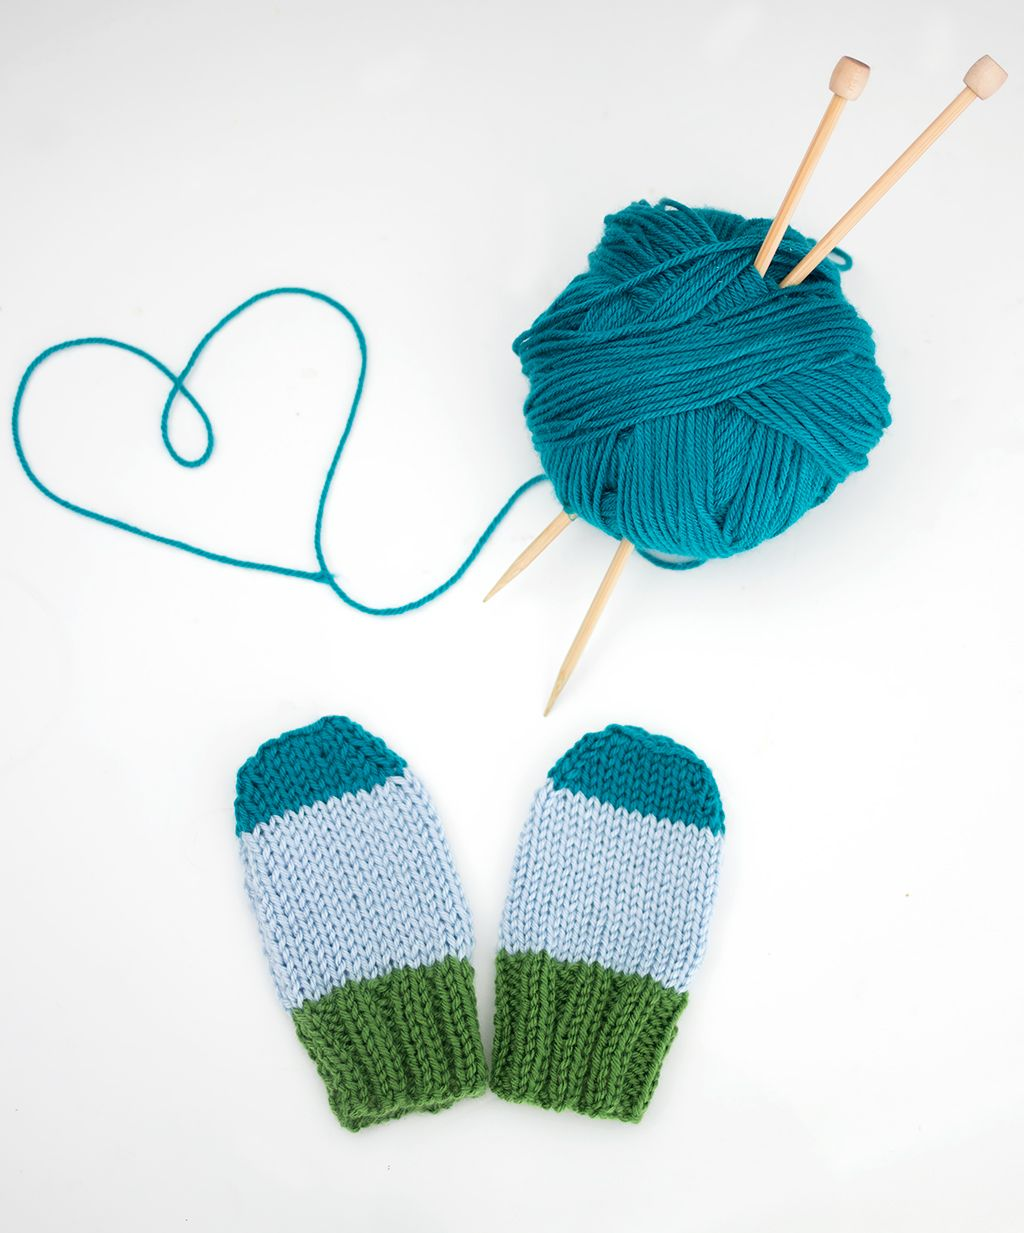 Flat Knit Baby Mitts - Gina Michele | Baby mittens ...